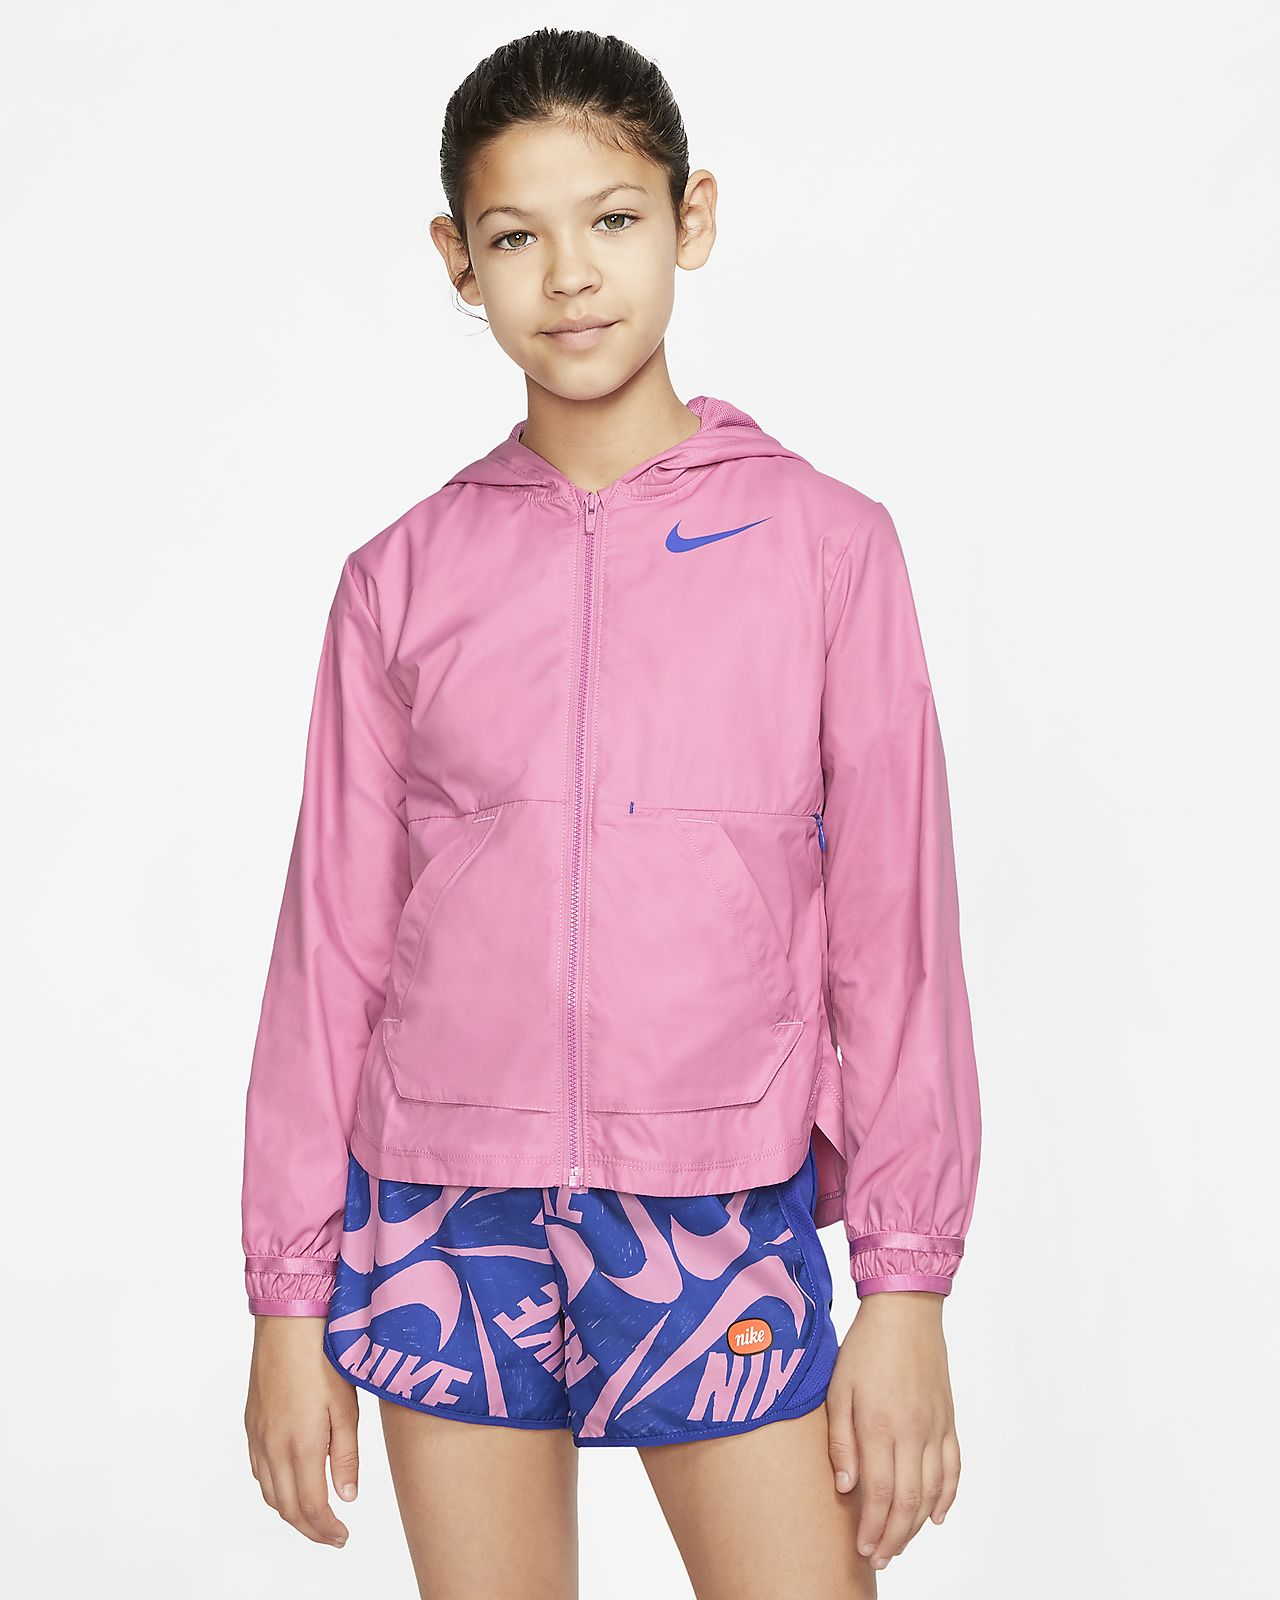 Nike Older Kids' (Girls') Training Jacket